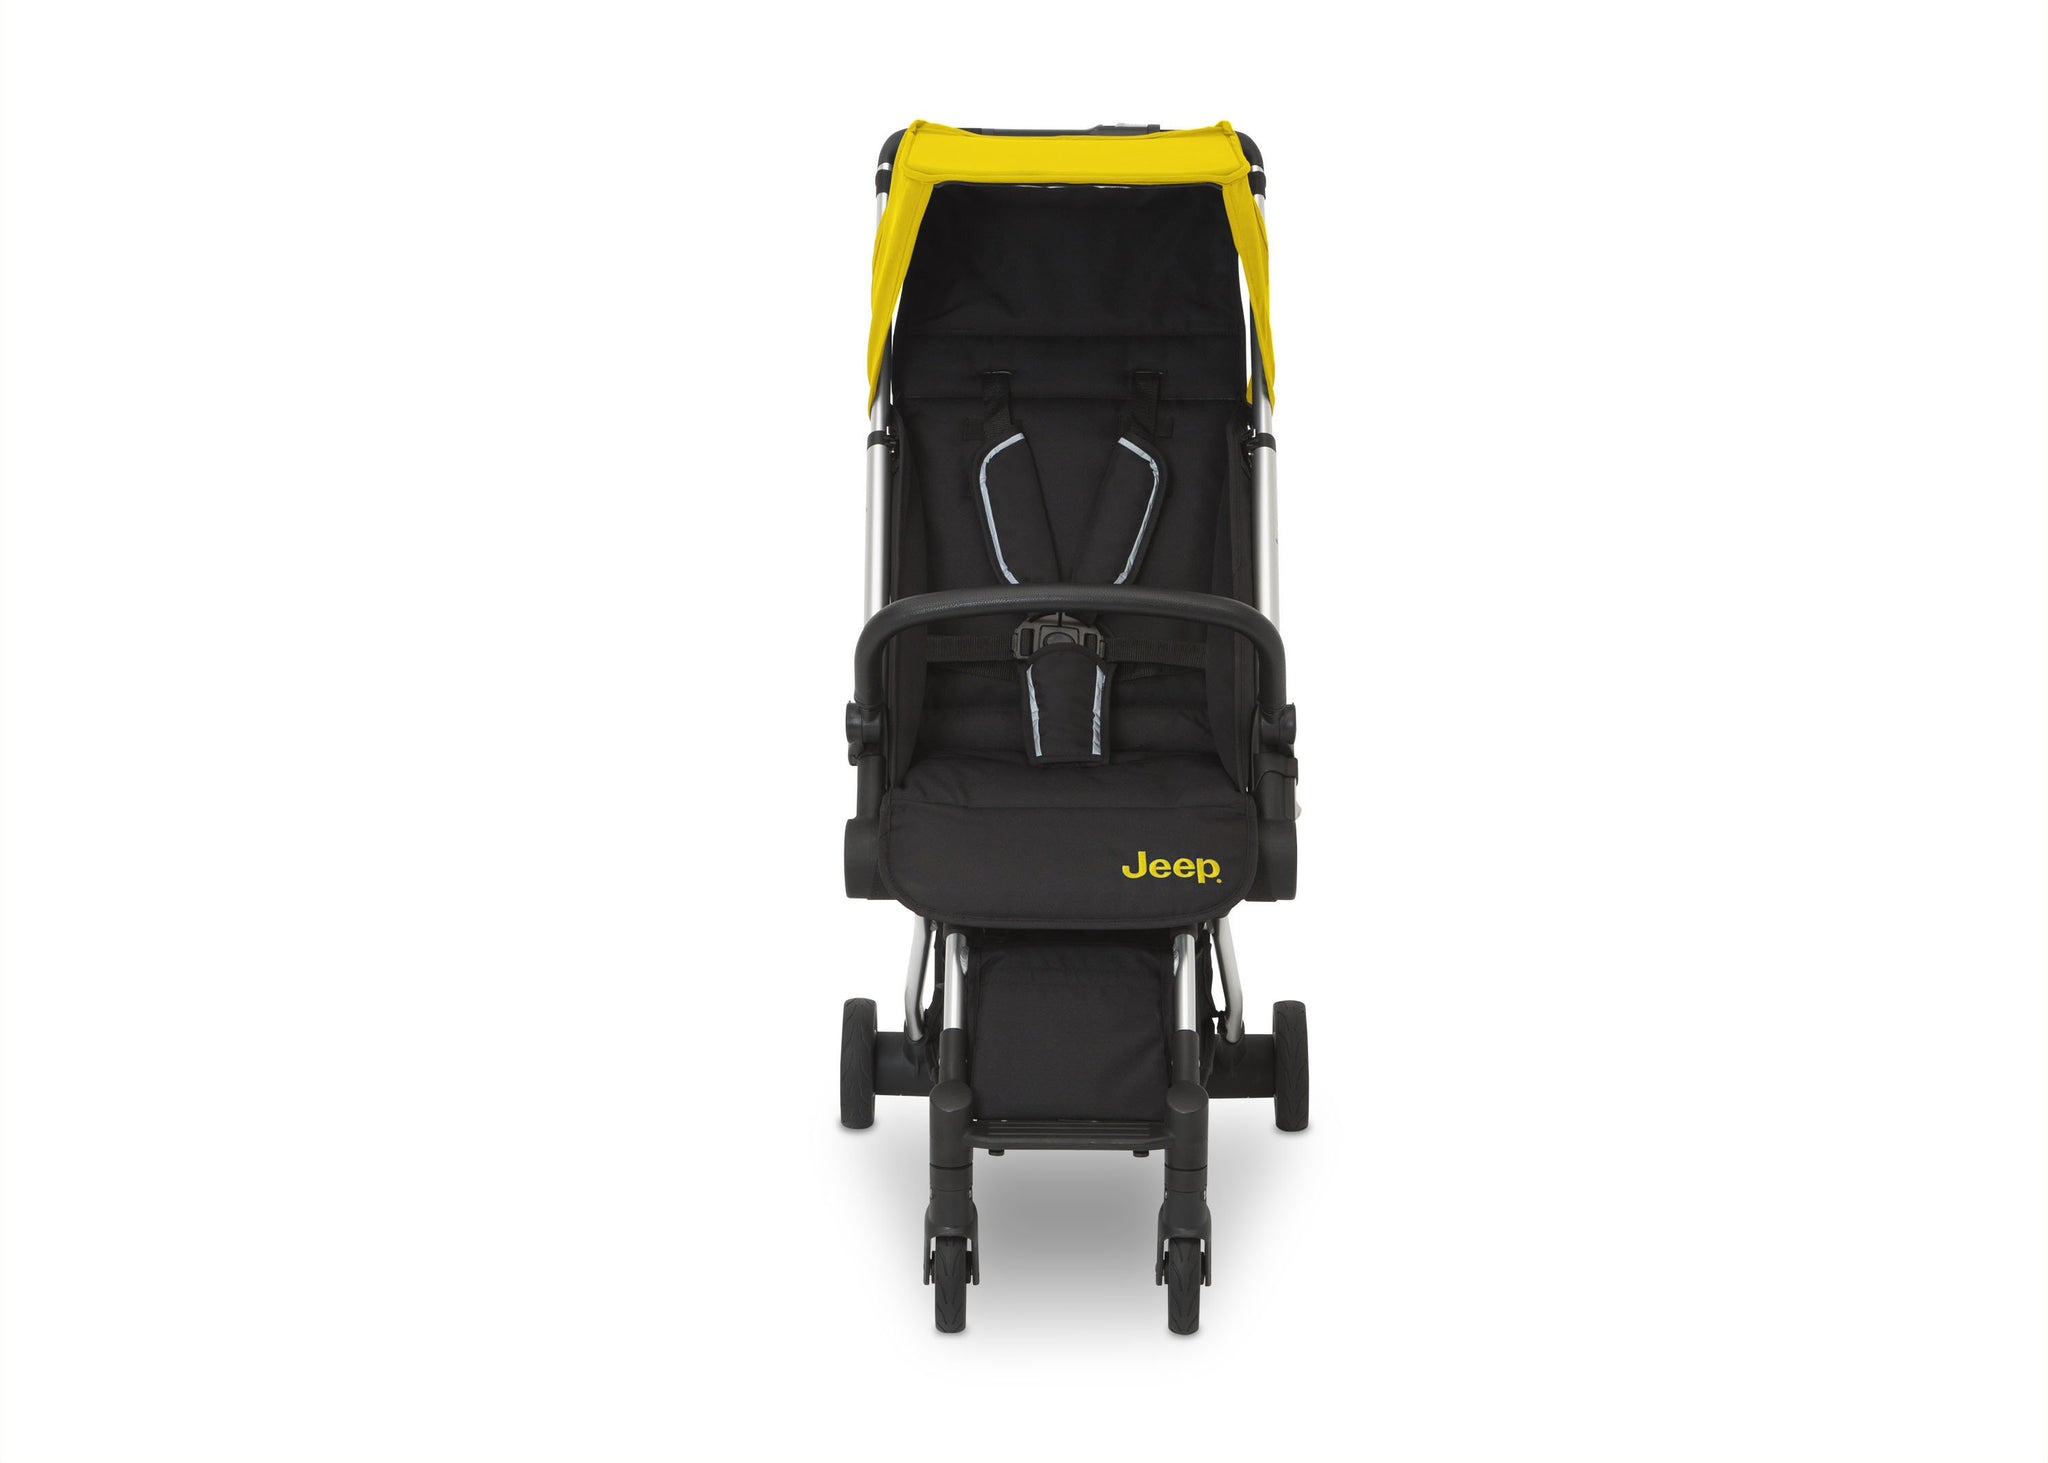 Jeep Yellow (2121) Arrow Travel Stroller, Front Silo View